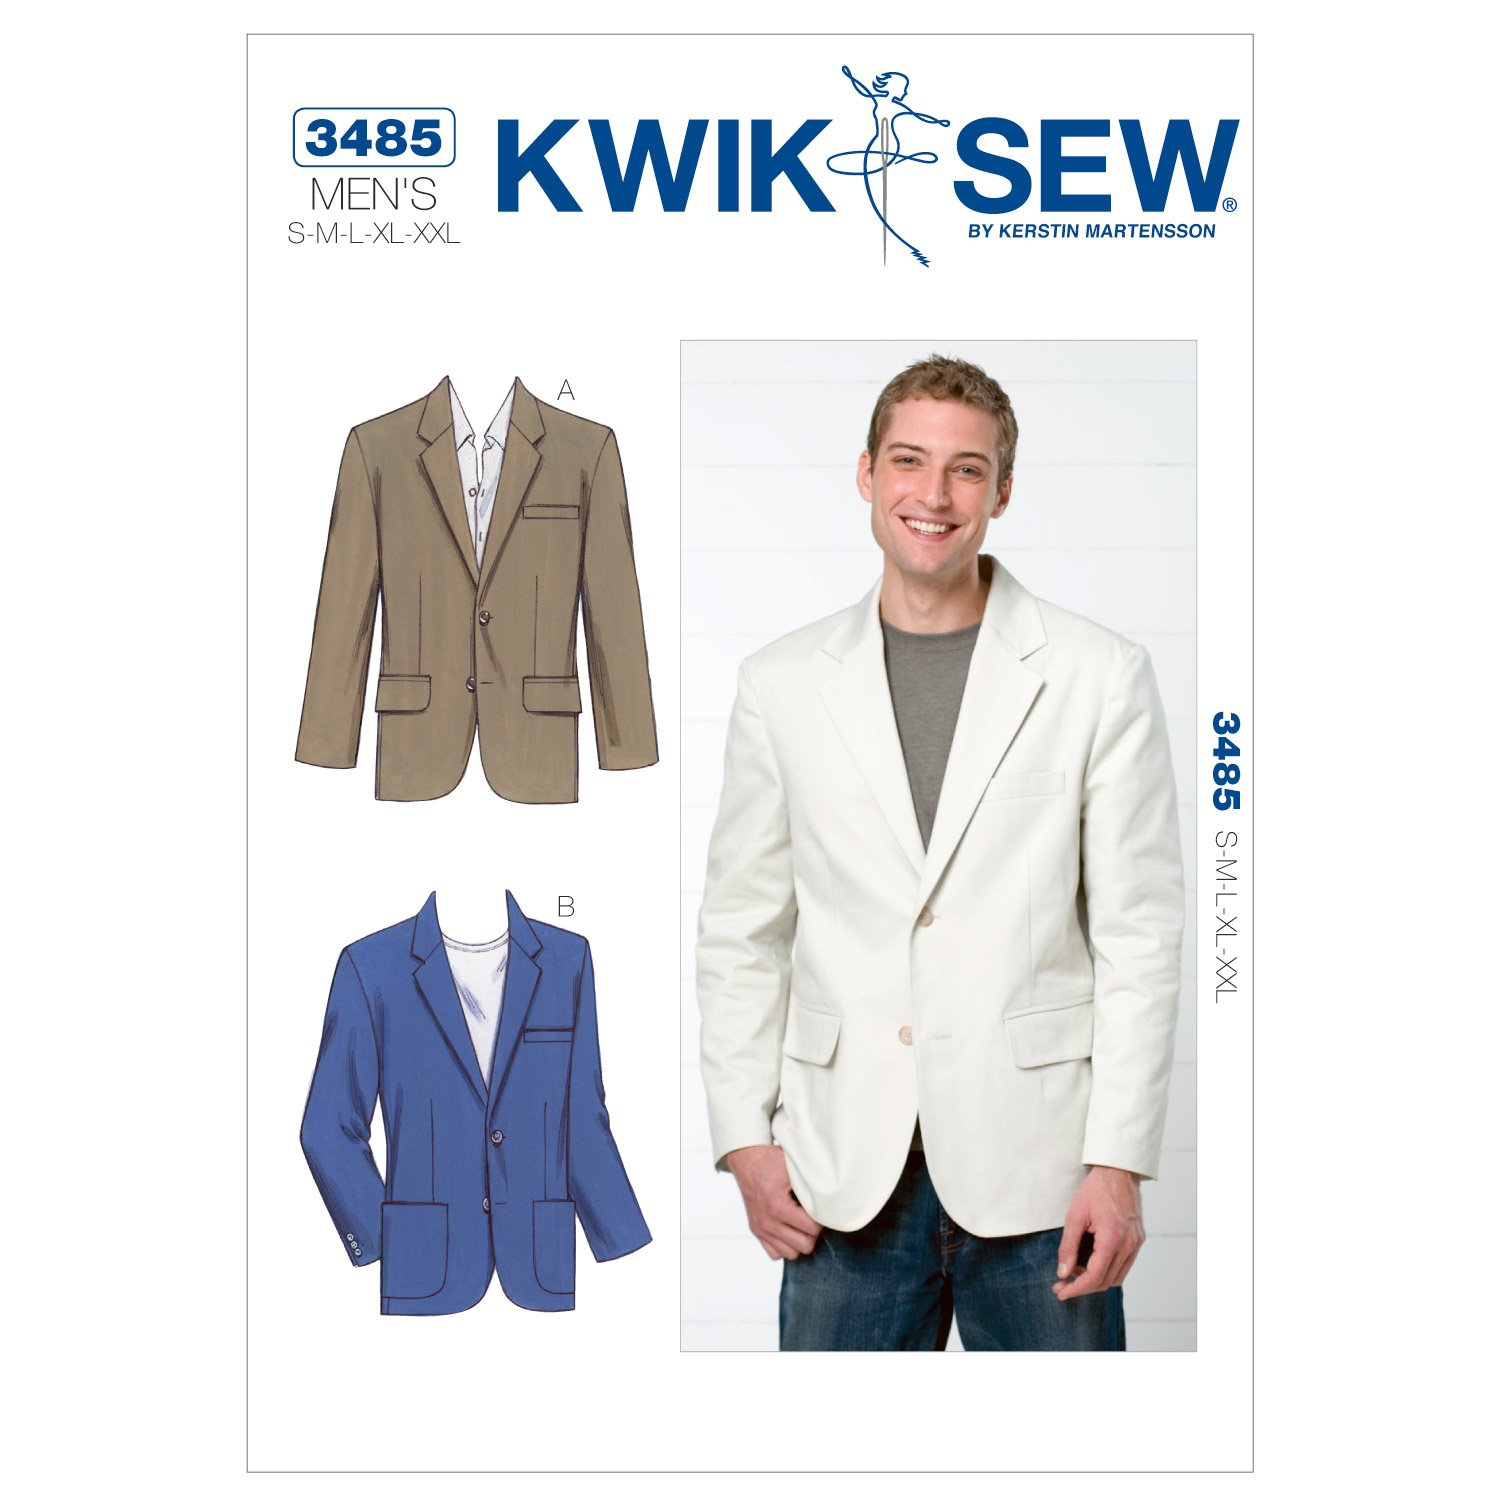 Amazon.com: Kwik Sew K3485 Blazer Sewing Pattern, Size S-M-L-XL-XXL ...